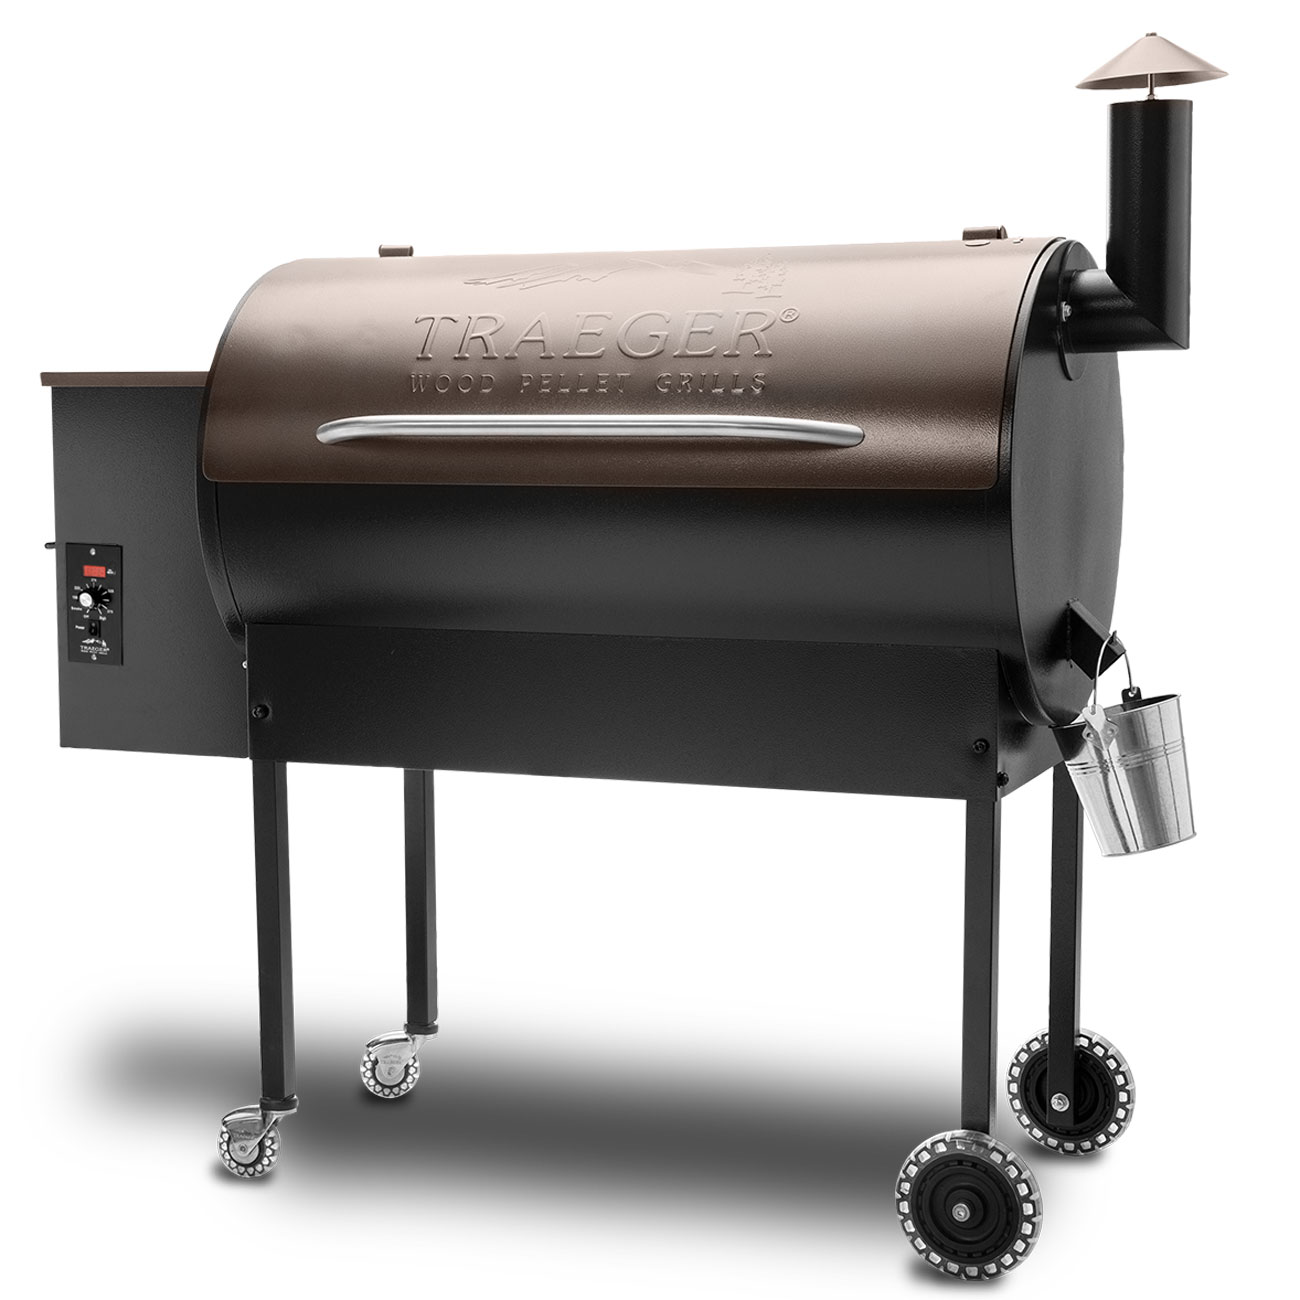 Traeger texas elite pellet grill quality fireplace bbq for Traeger smoker